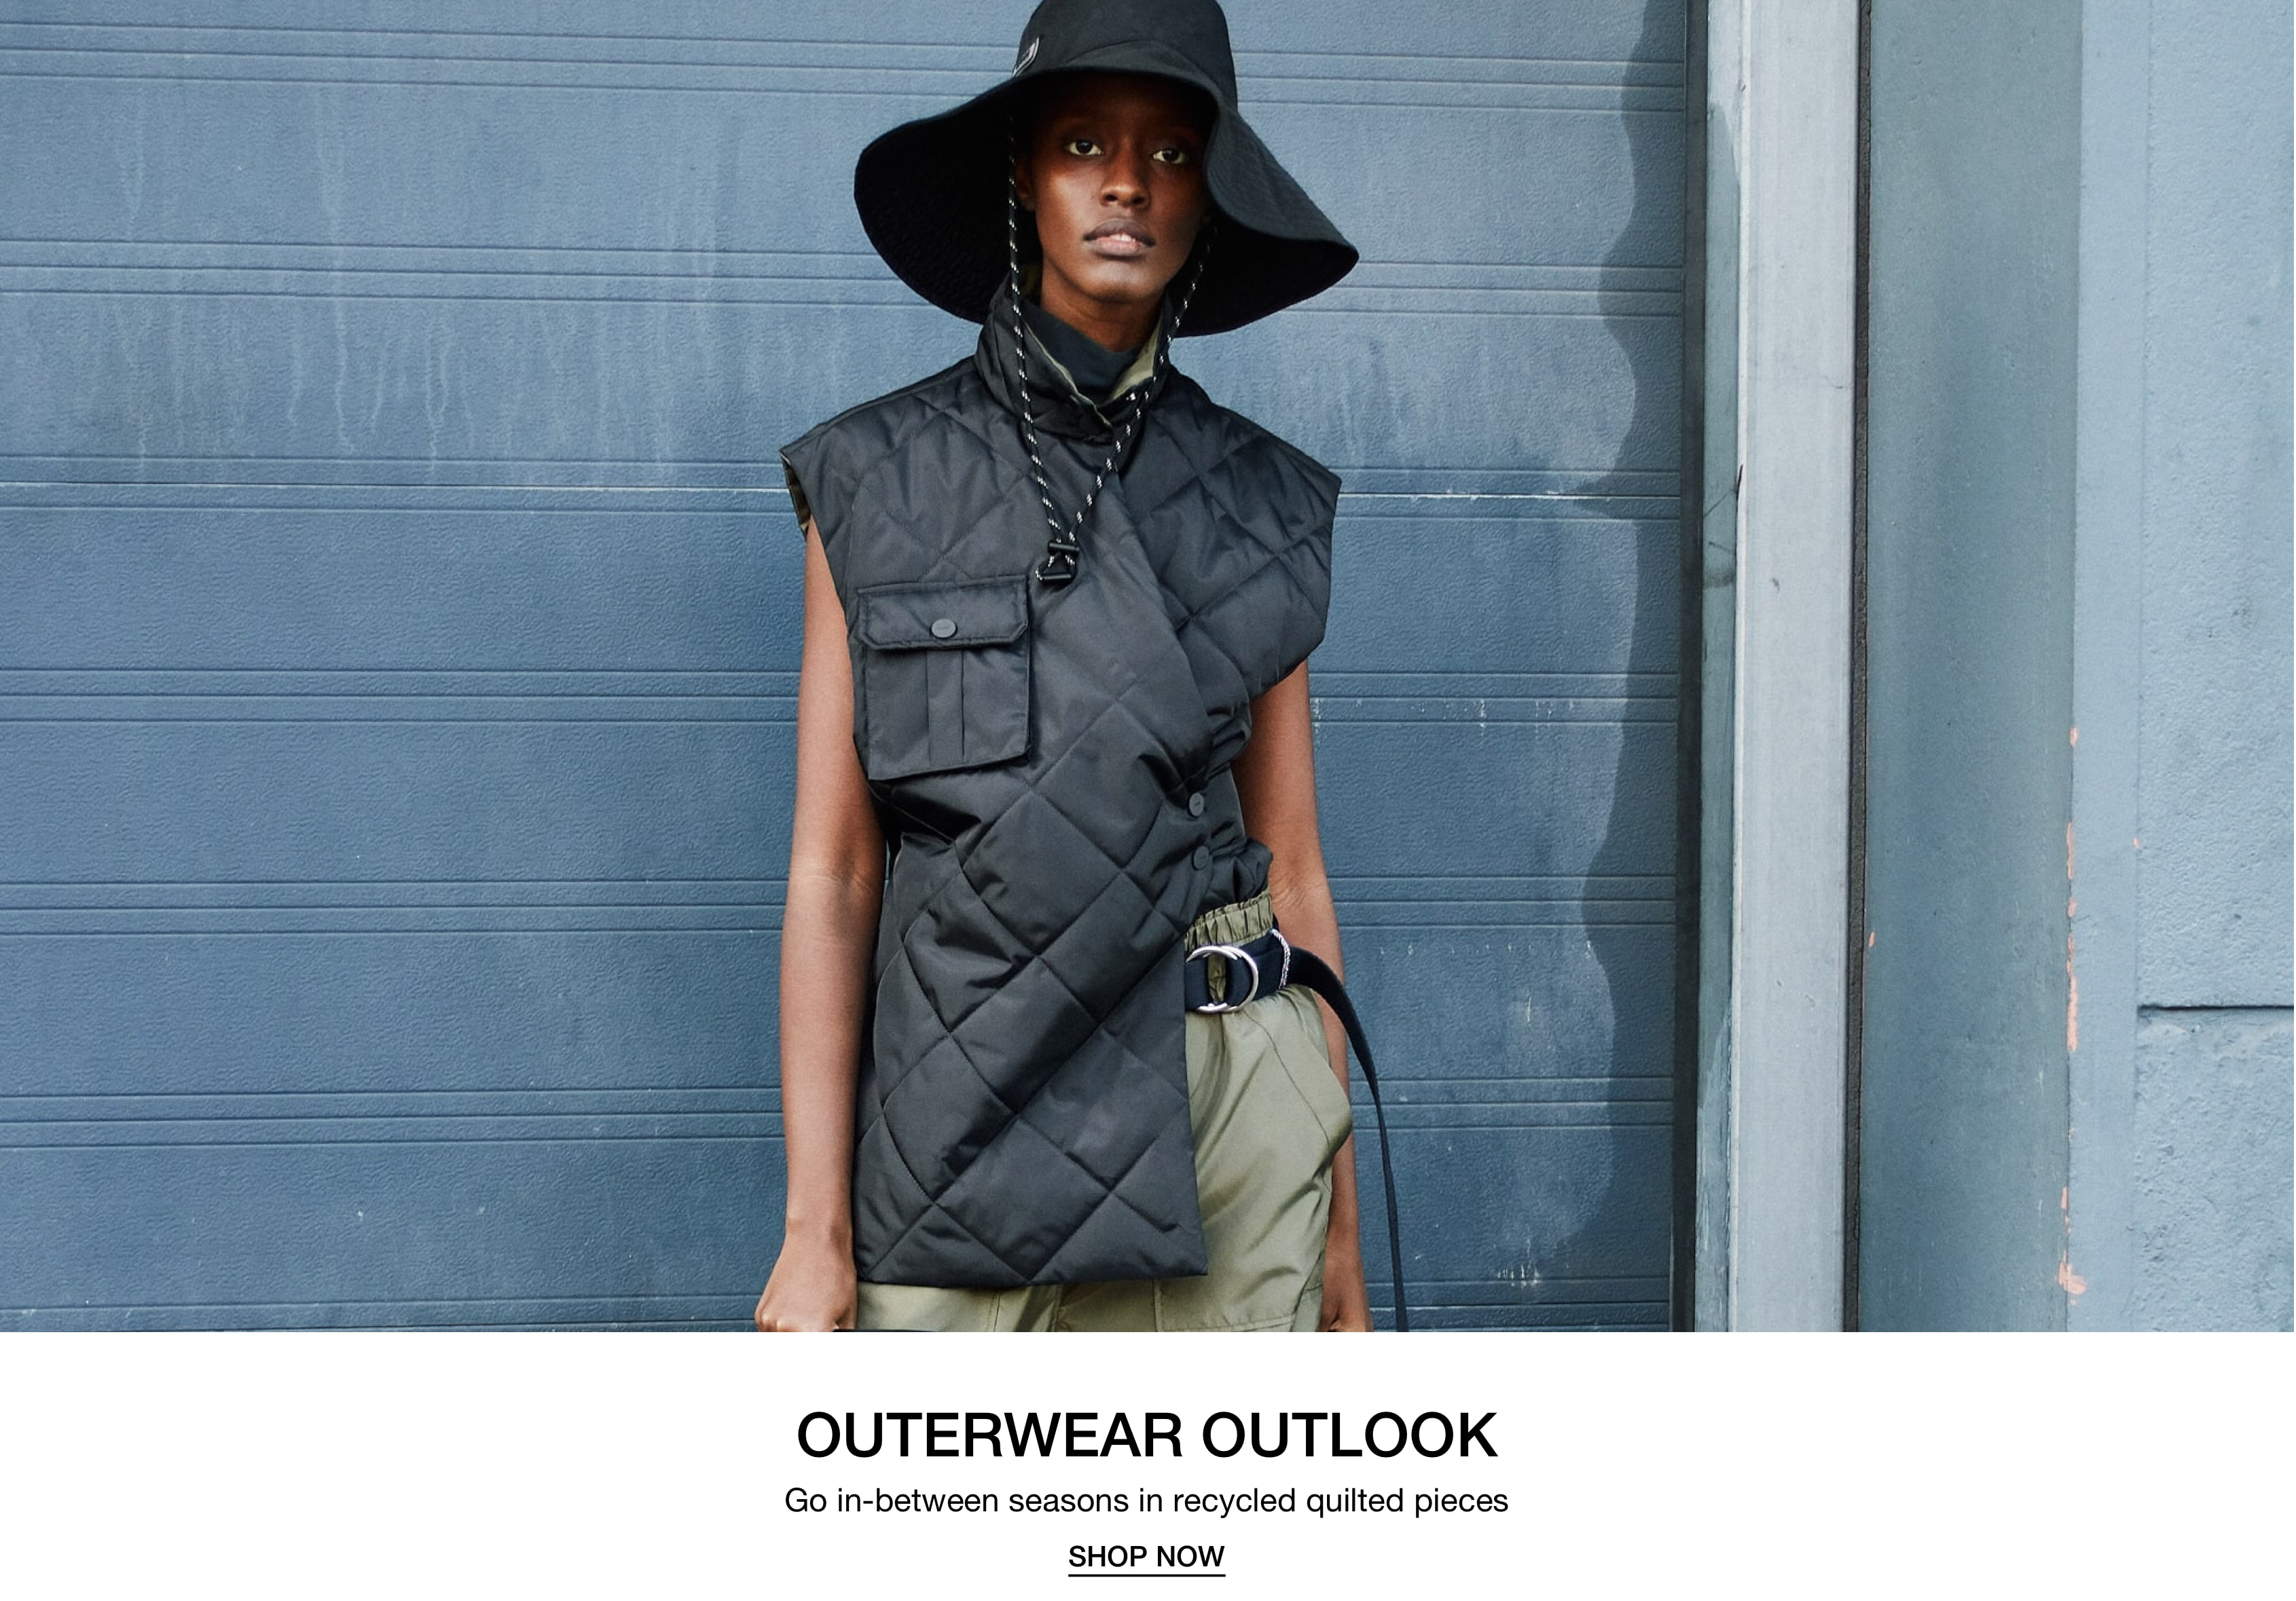 OUTERWEAR OUTLOOK Go in-between seasons in recycled quilted pieces